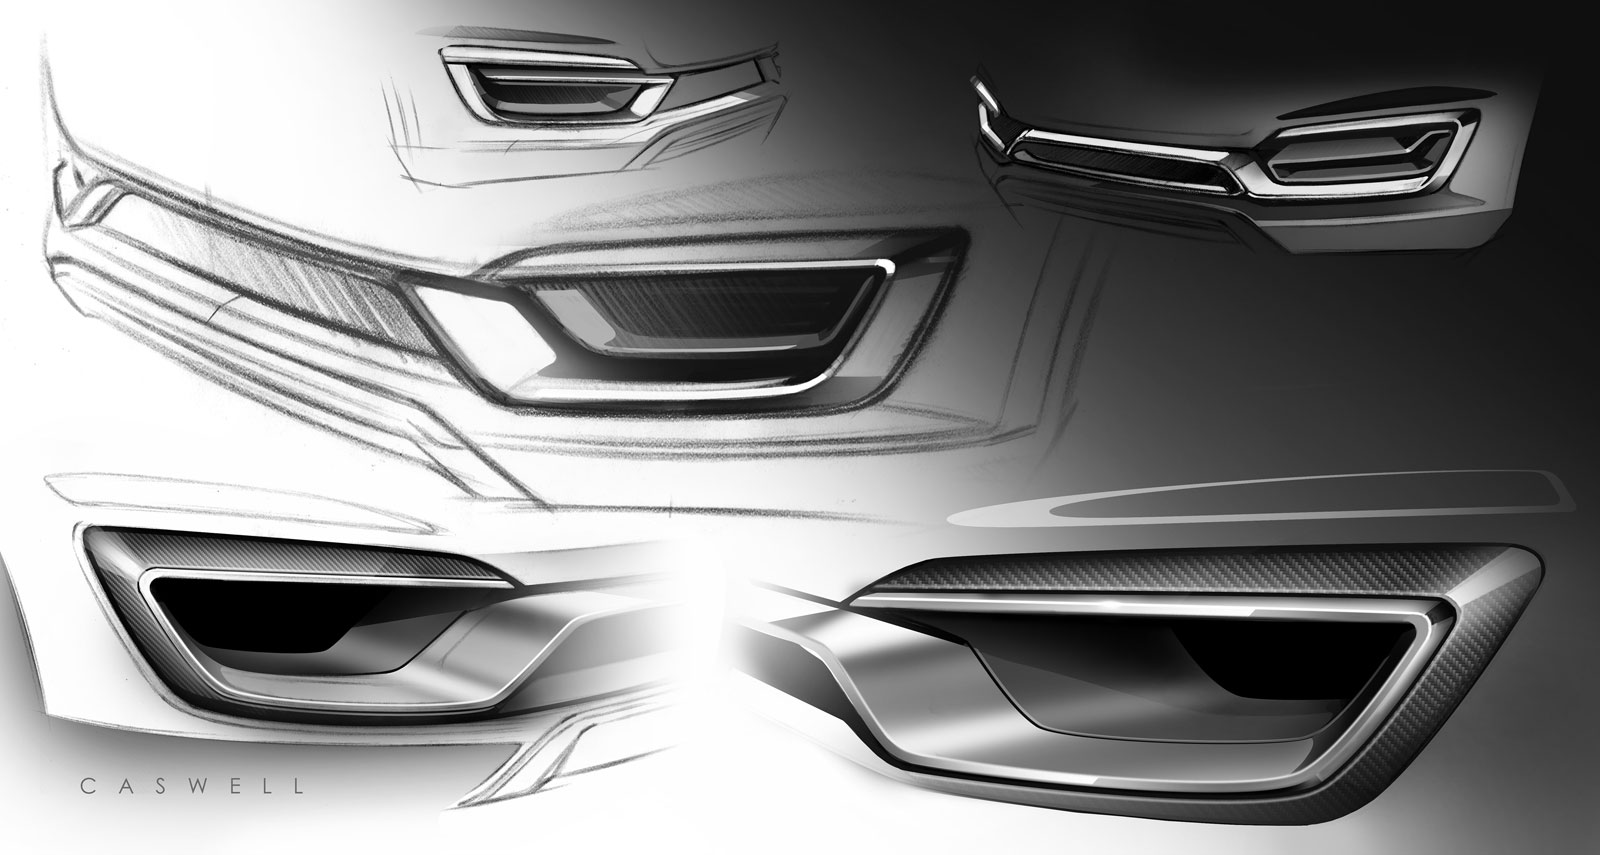 lincoln mkx concept - details design sketches by-john caswell